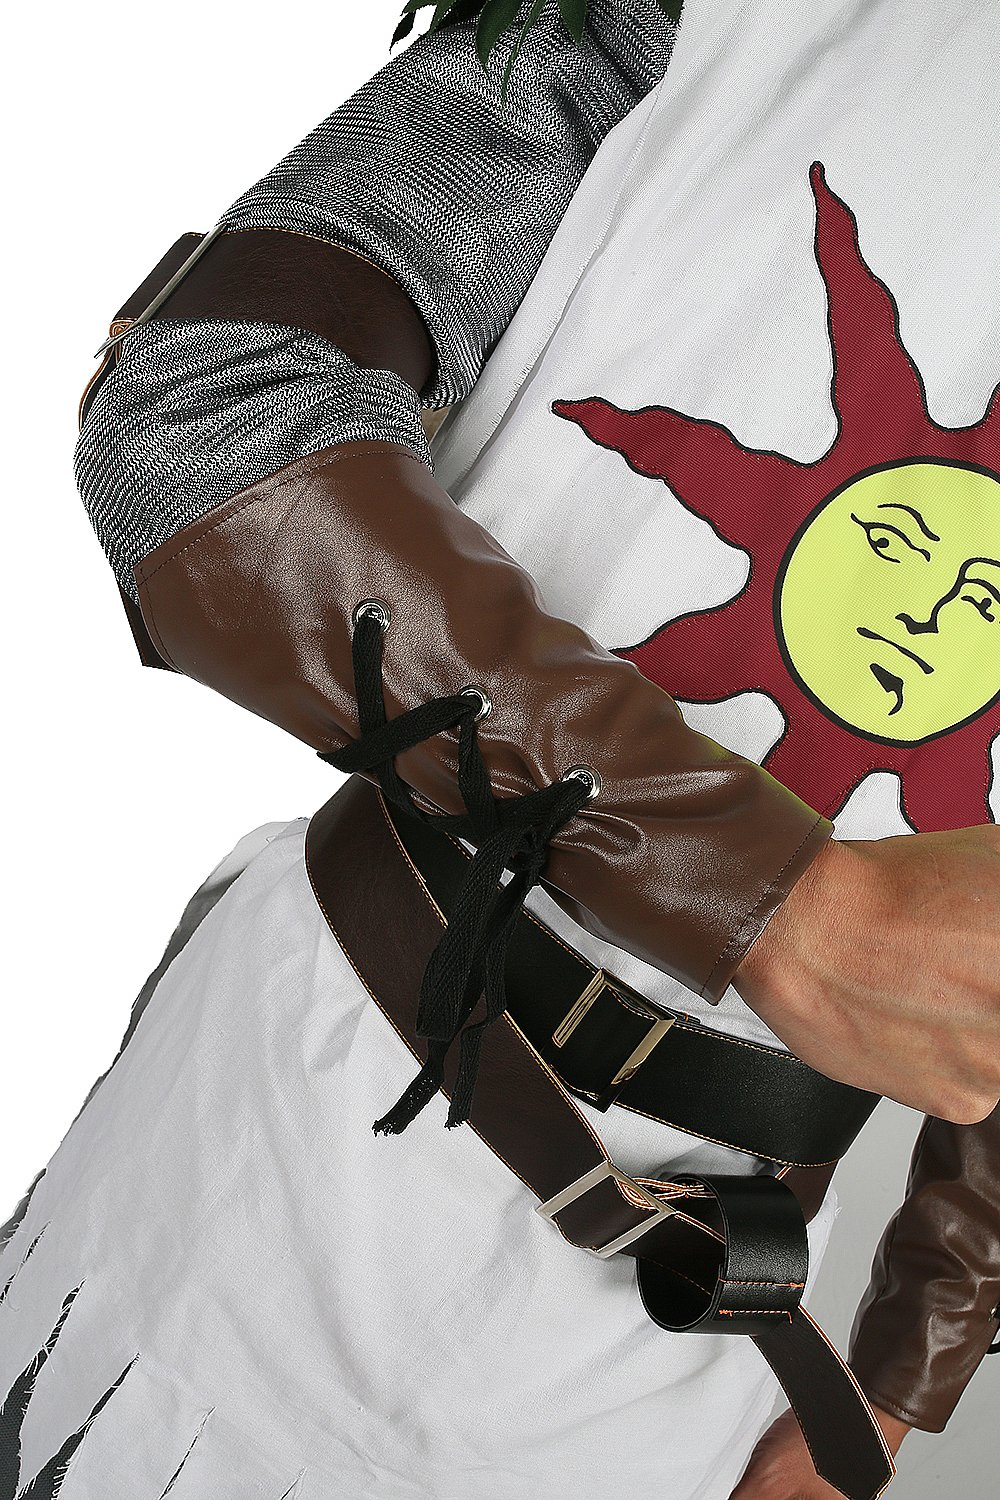 Solaire Costume Sun Warrior Outfit for Halloween Cosplay L by xcostume (Image #6)